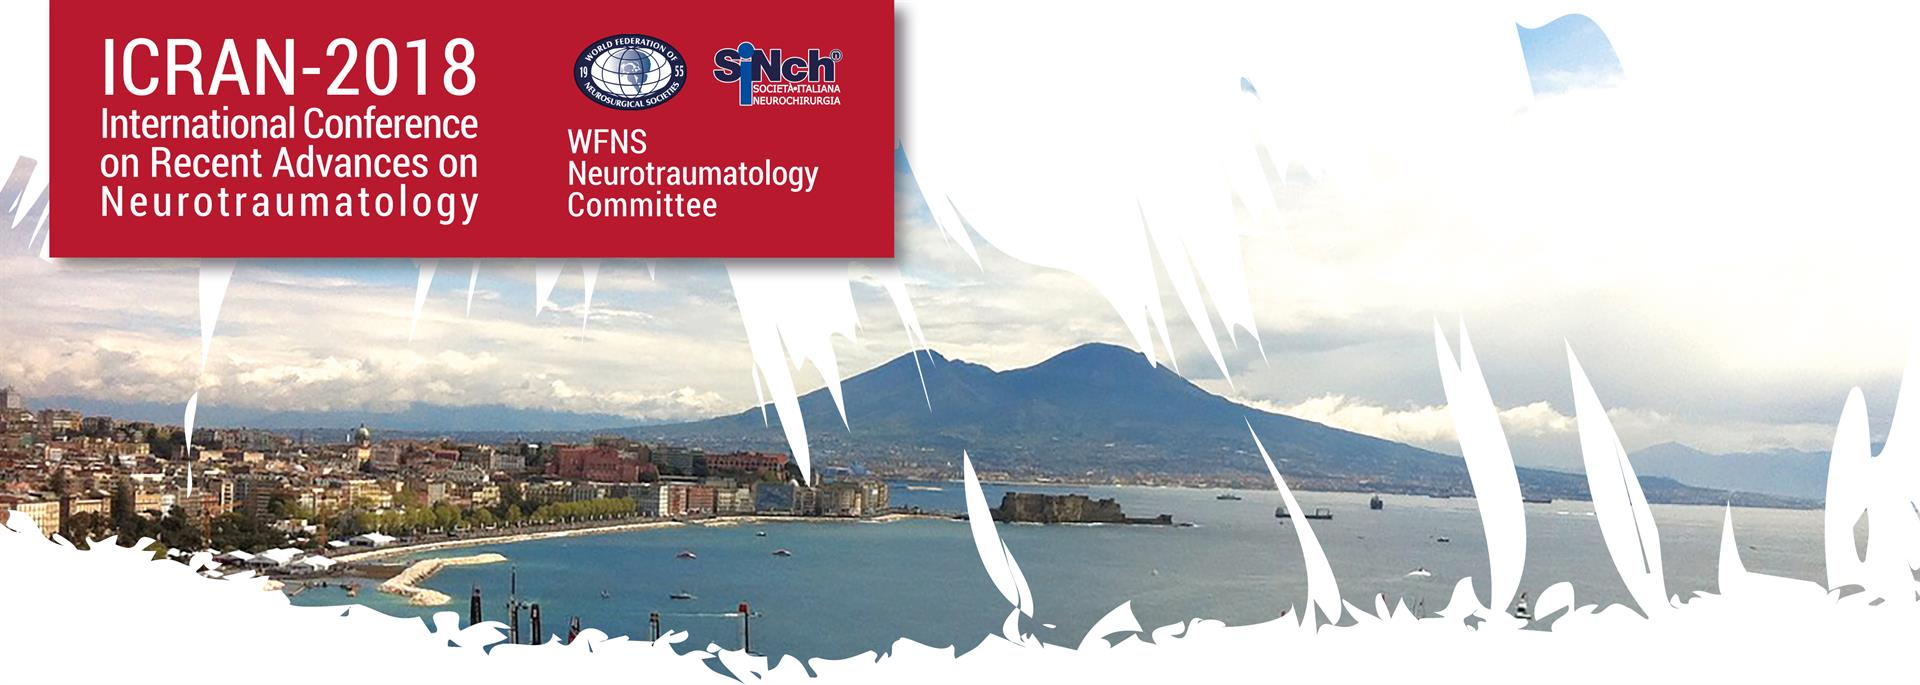 ICRAN2018 from Italy, June 21: Cisternostomy Lectures